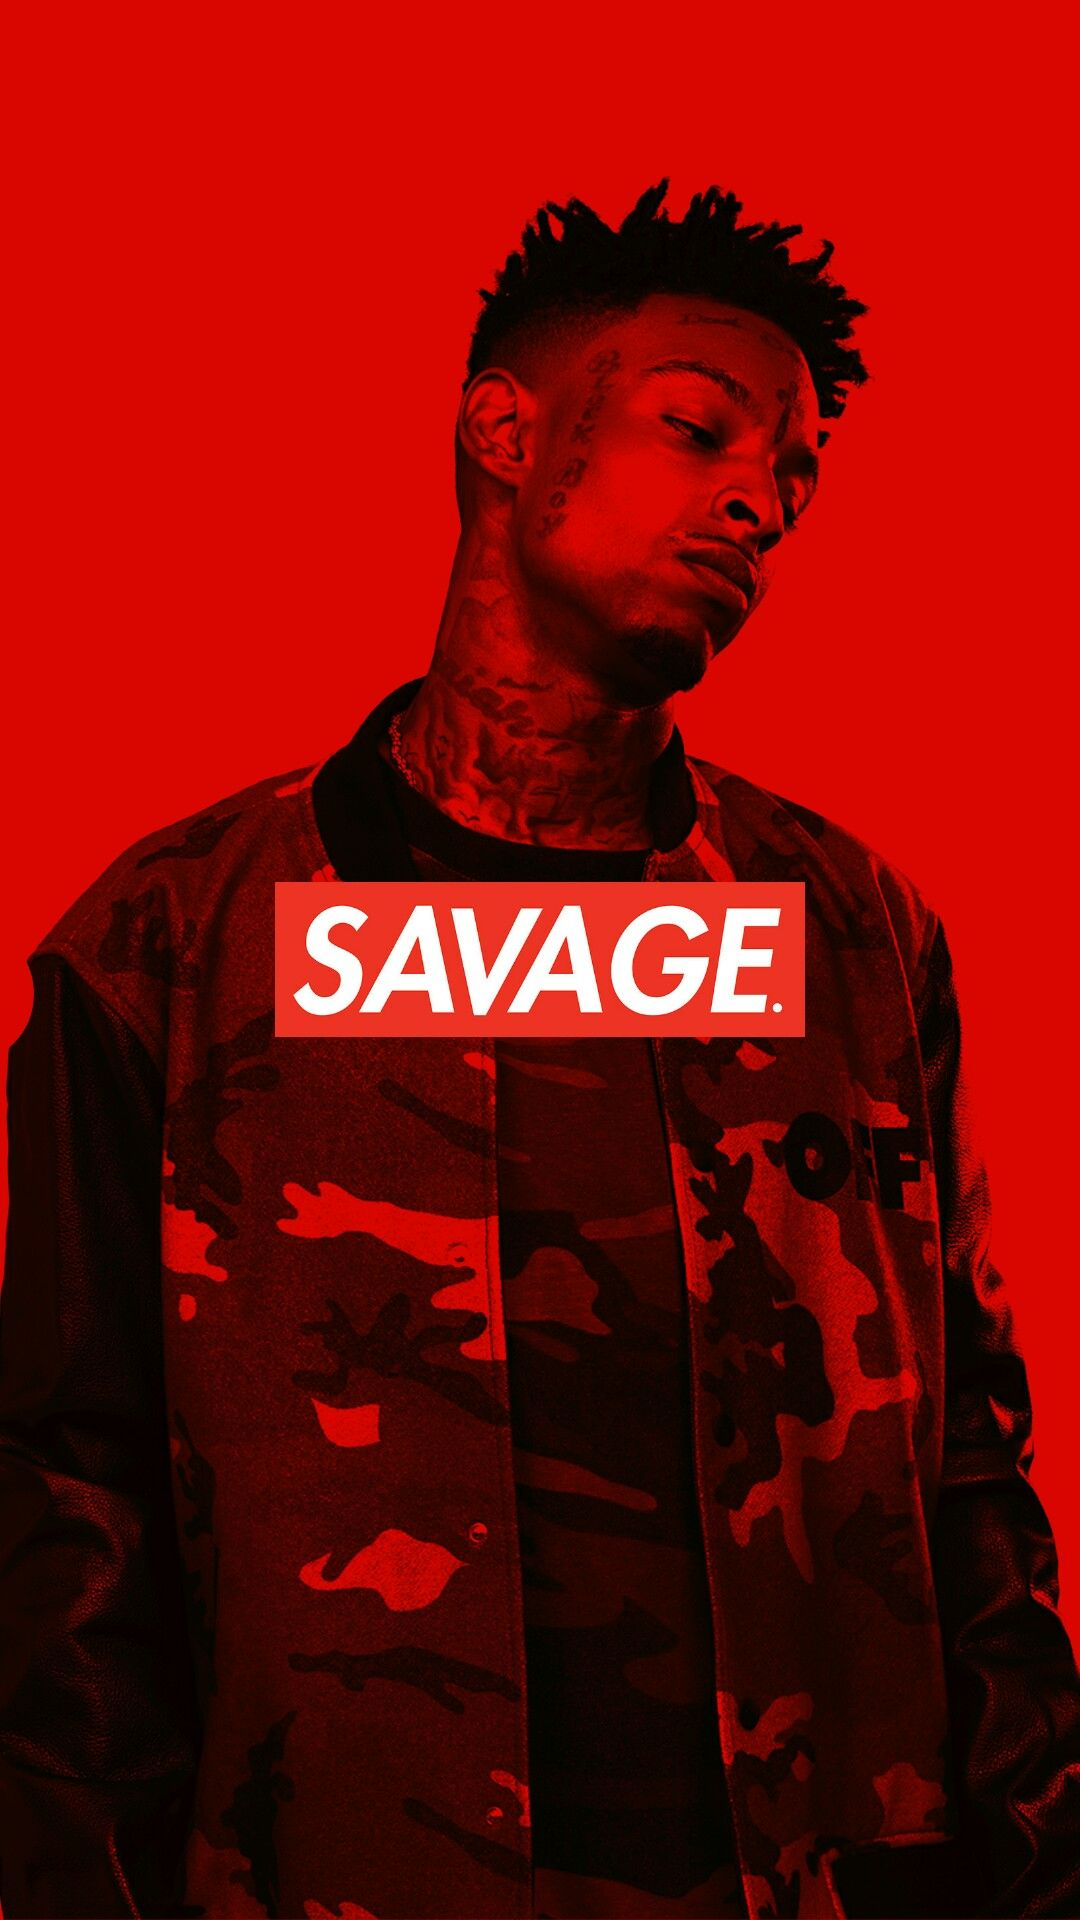 21 Savage IPhone Wallpaper Savage box logo Savage